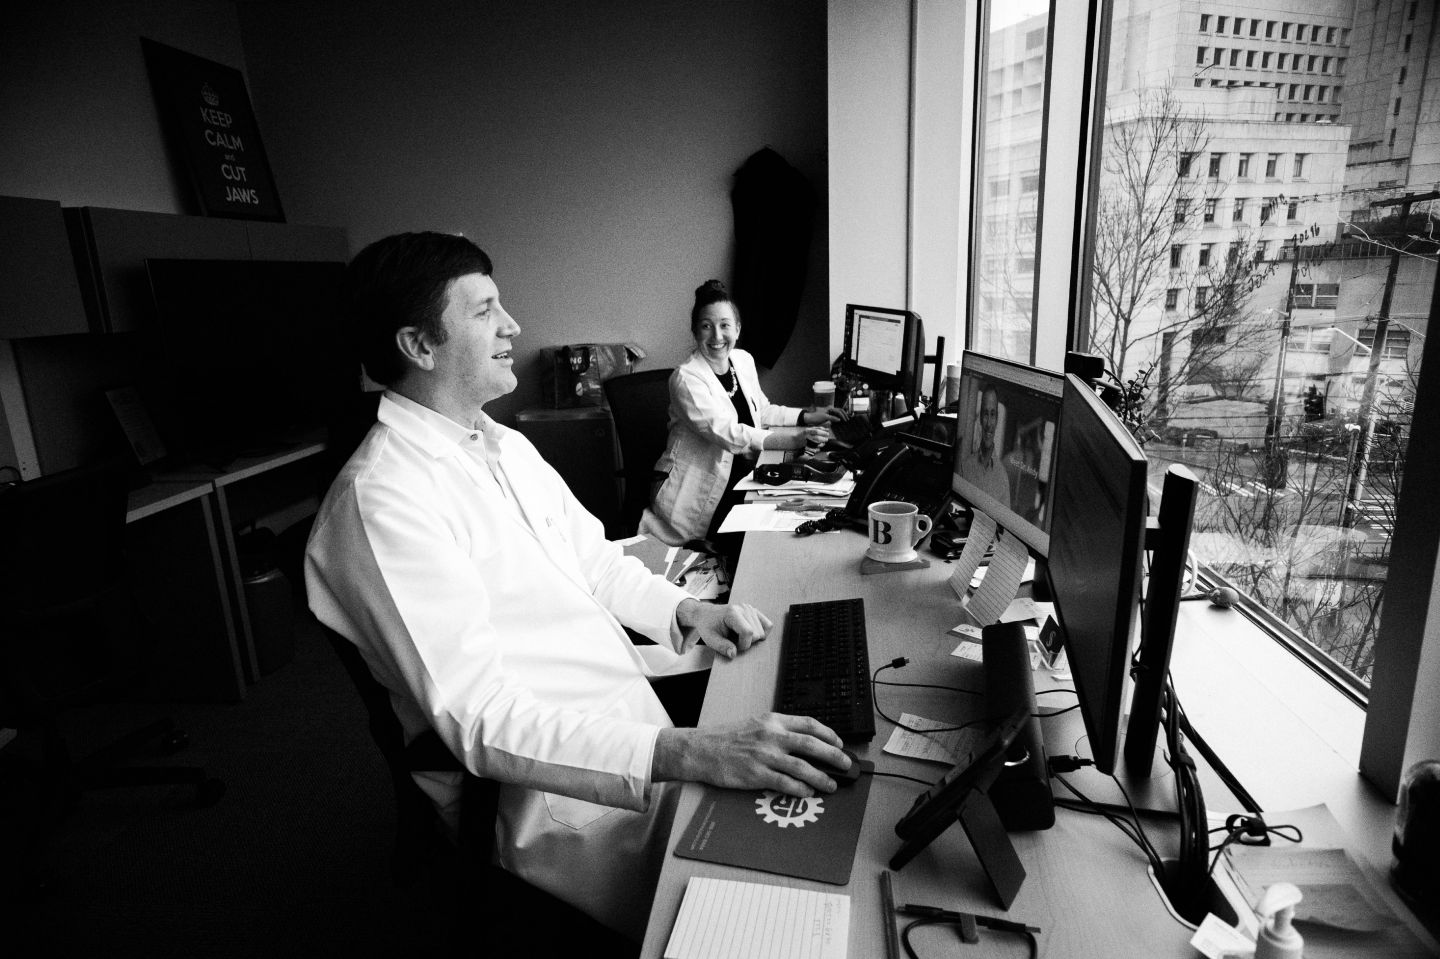 Black and white photograph of St. Catherine University alumna Andrea Burgess MPAS'15, PA-C, (right) and Dr. Sam Bobek, DMD, MD, FACS, in the Seattle Jaw Surgery clinic in Seattle, Washington. They are both smiling, seated in front of computers, facing a window. Photo Credit: Panravee Photography